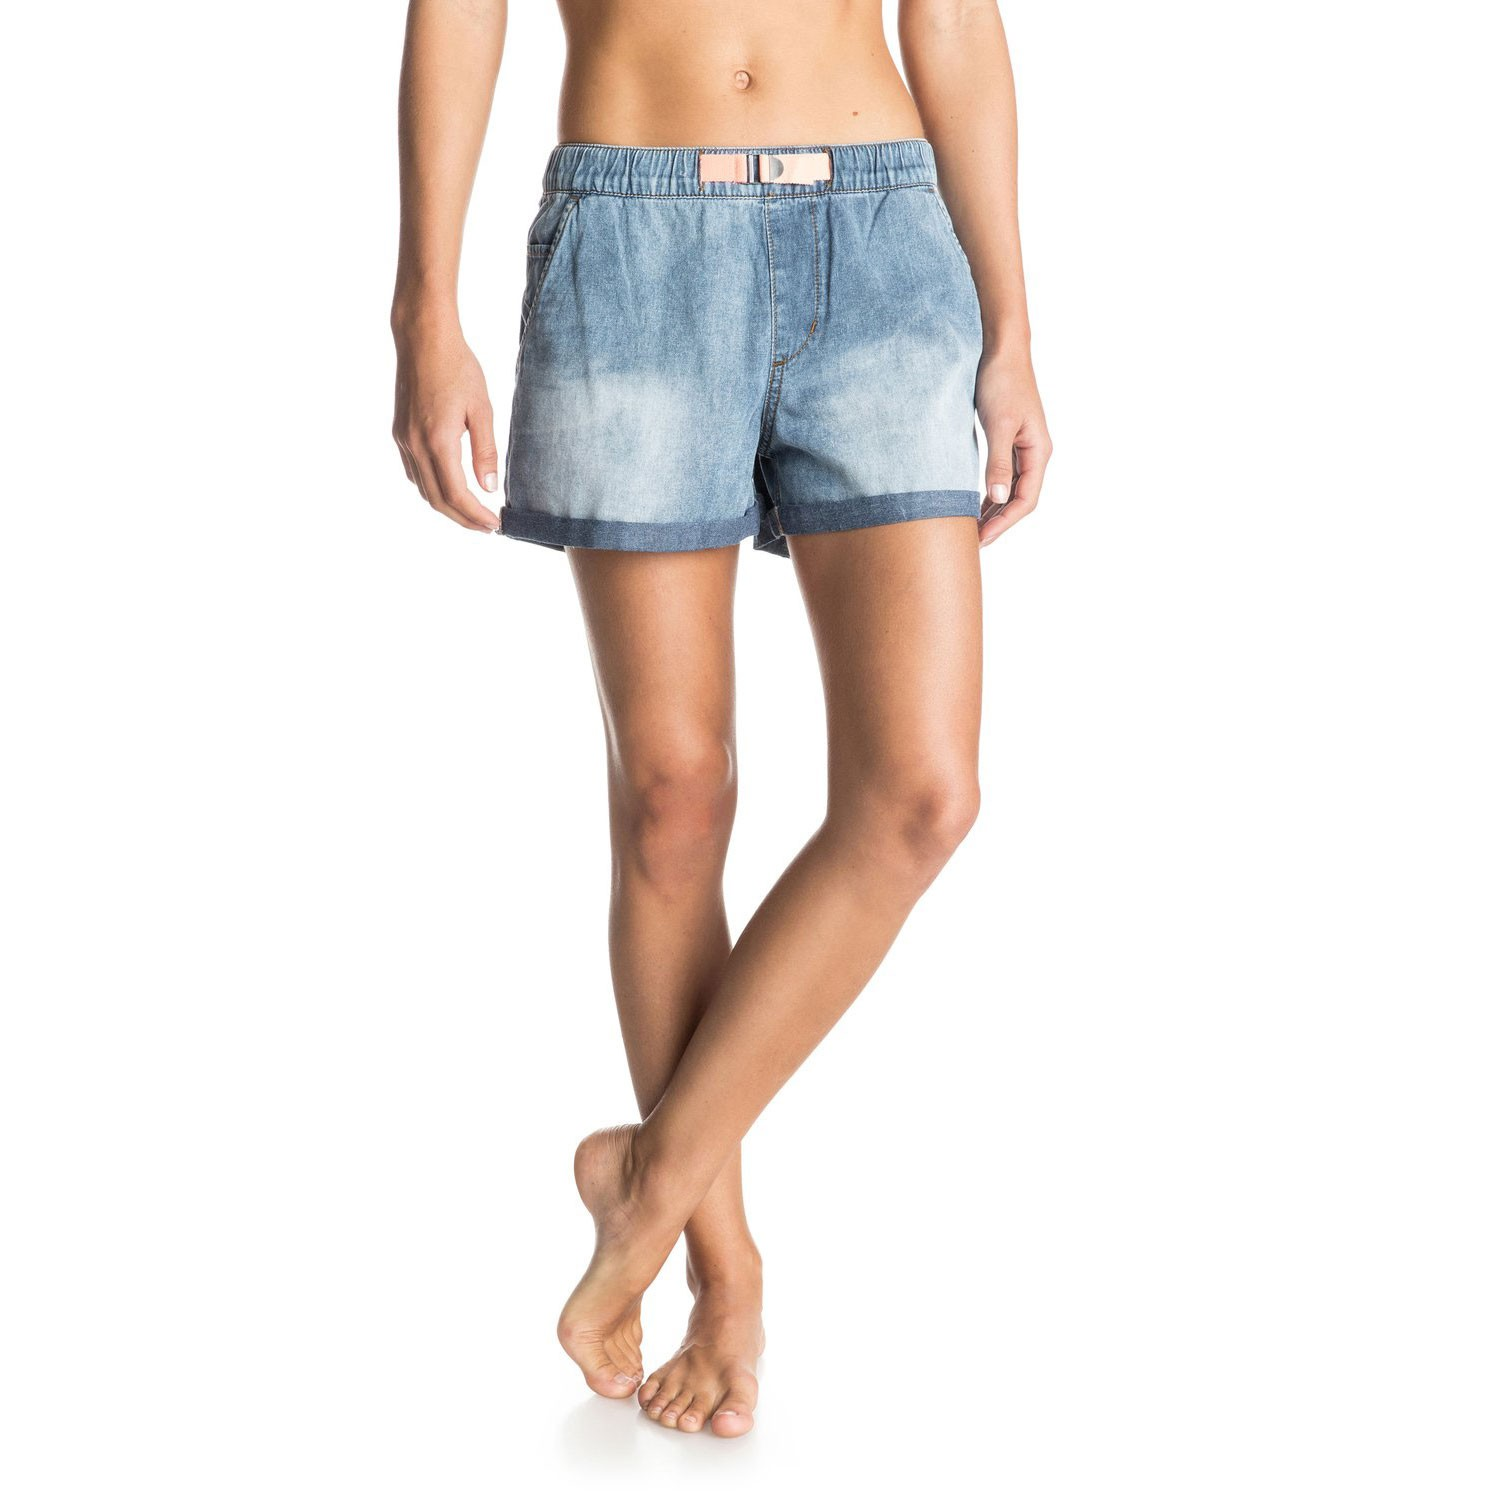 Kraťasy Roxy Fonxy Short Denim med blue wash